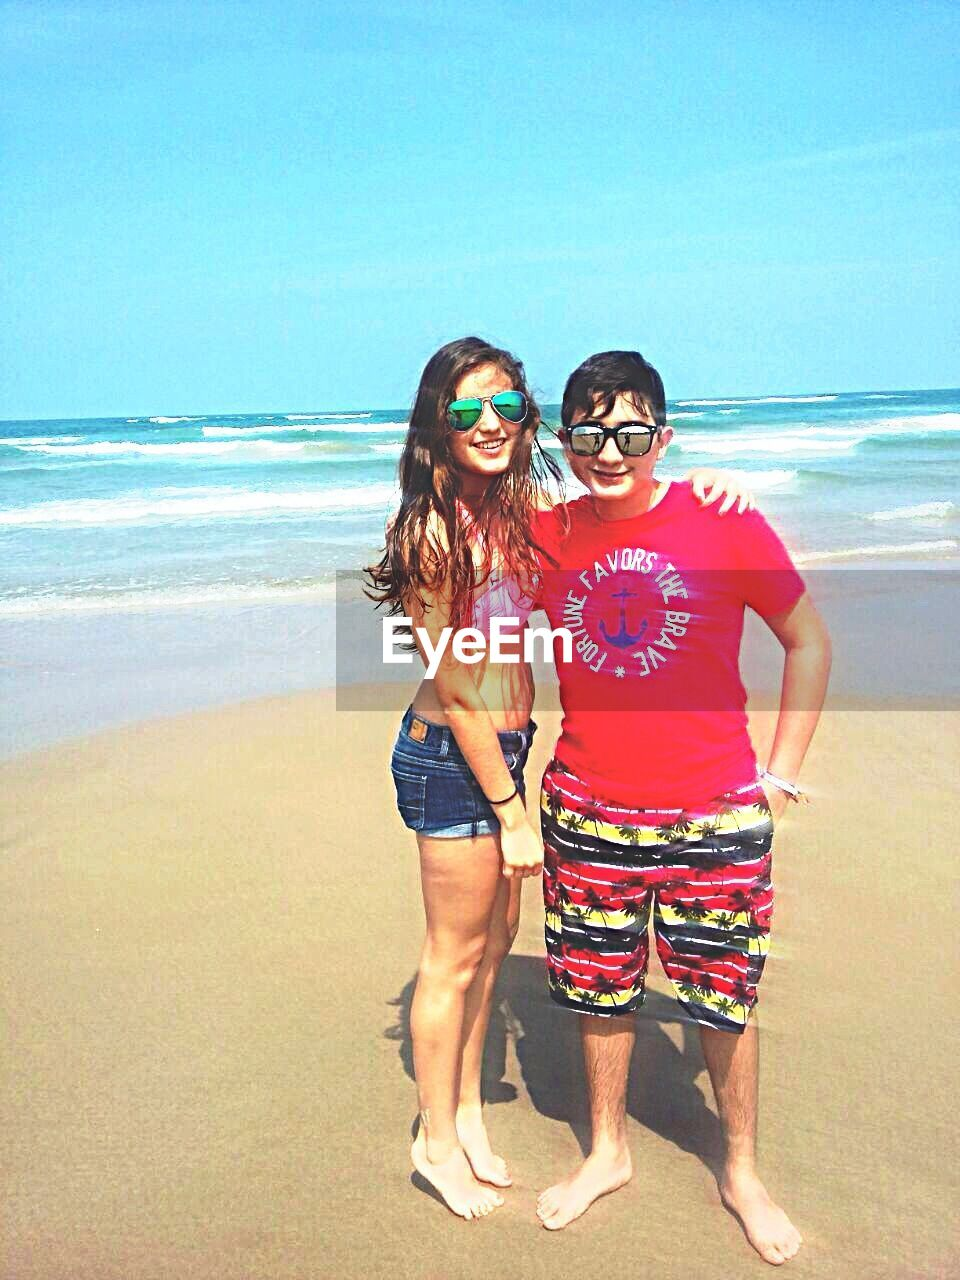 beach, sea, sunglasses, vacations, summer, sand, standing, young adult, two people, young women, full length, looking at camera, portrait, fun, leisure activity, beauty in nature, outdoors, togetherness, nature, lifestyles, friendship, real people, scenics, day, happiness, water, adult, beautiful woman, sky, women, smiling, horizon over water, eyeglasses, only women, people, adults only